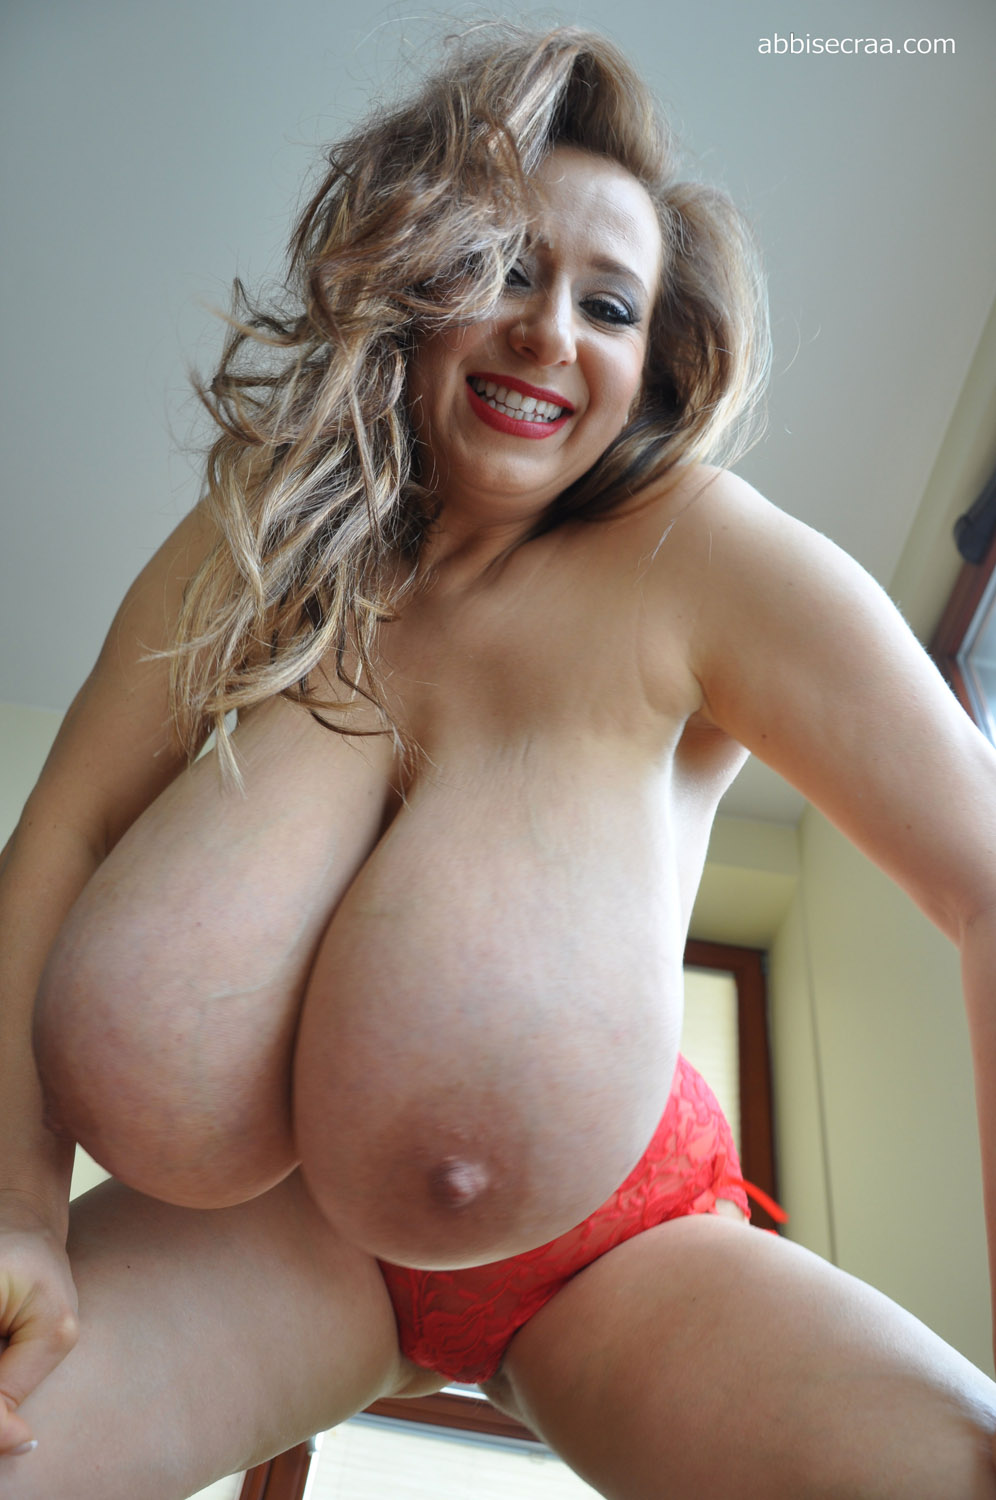 Lisa biggest natural breasts in france gros seins - 3 part 3